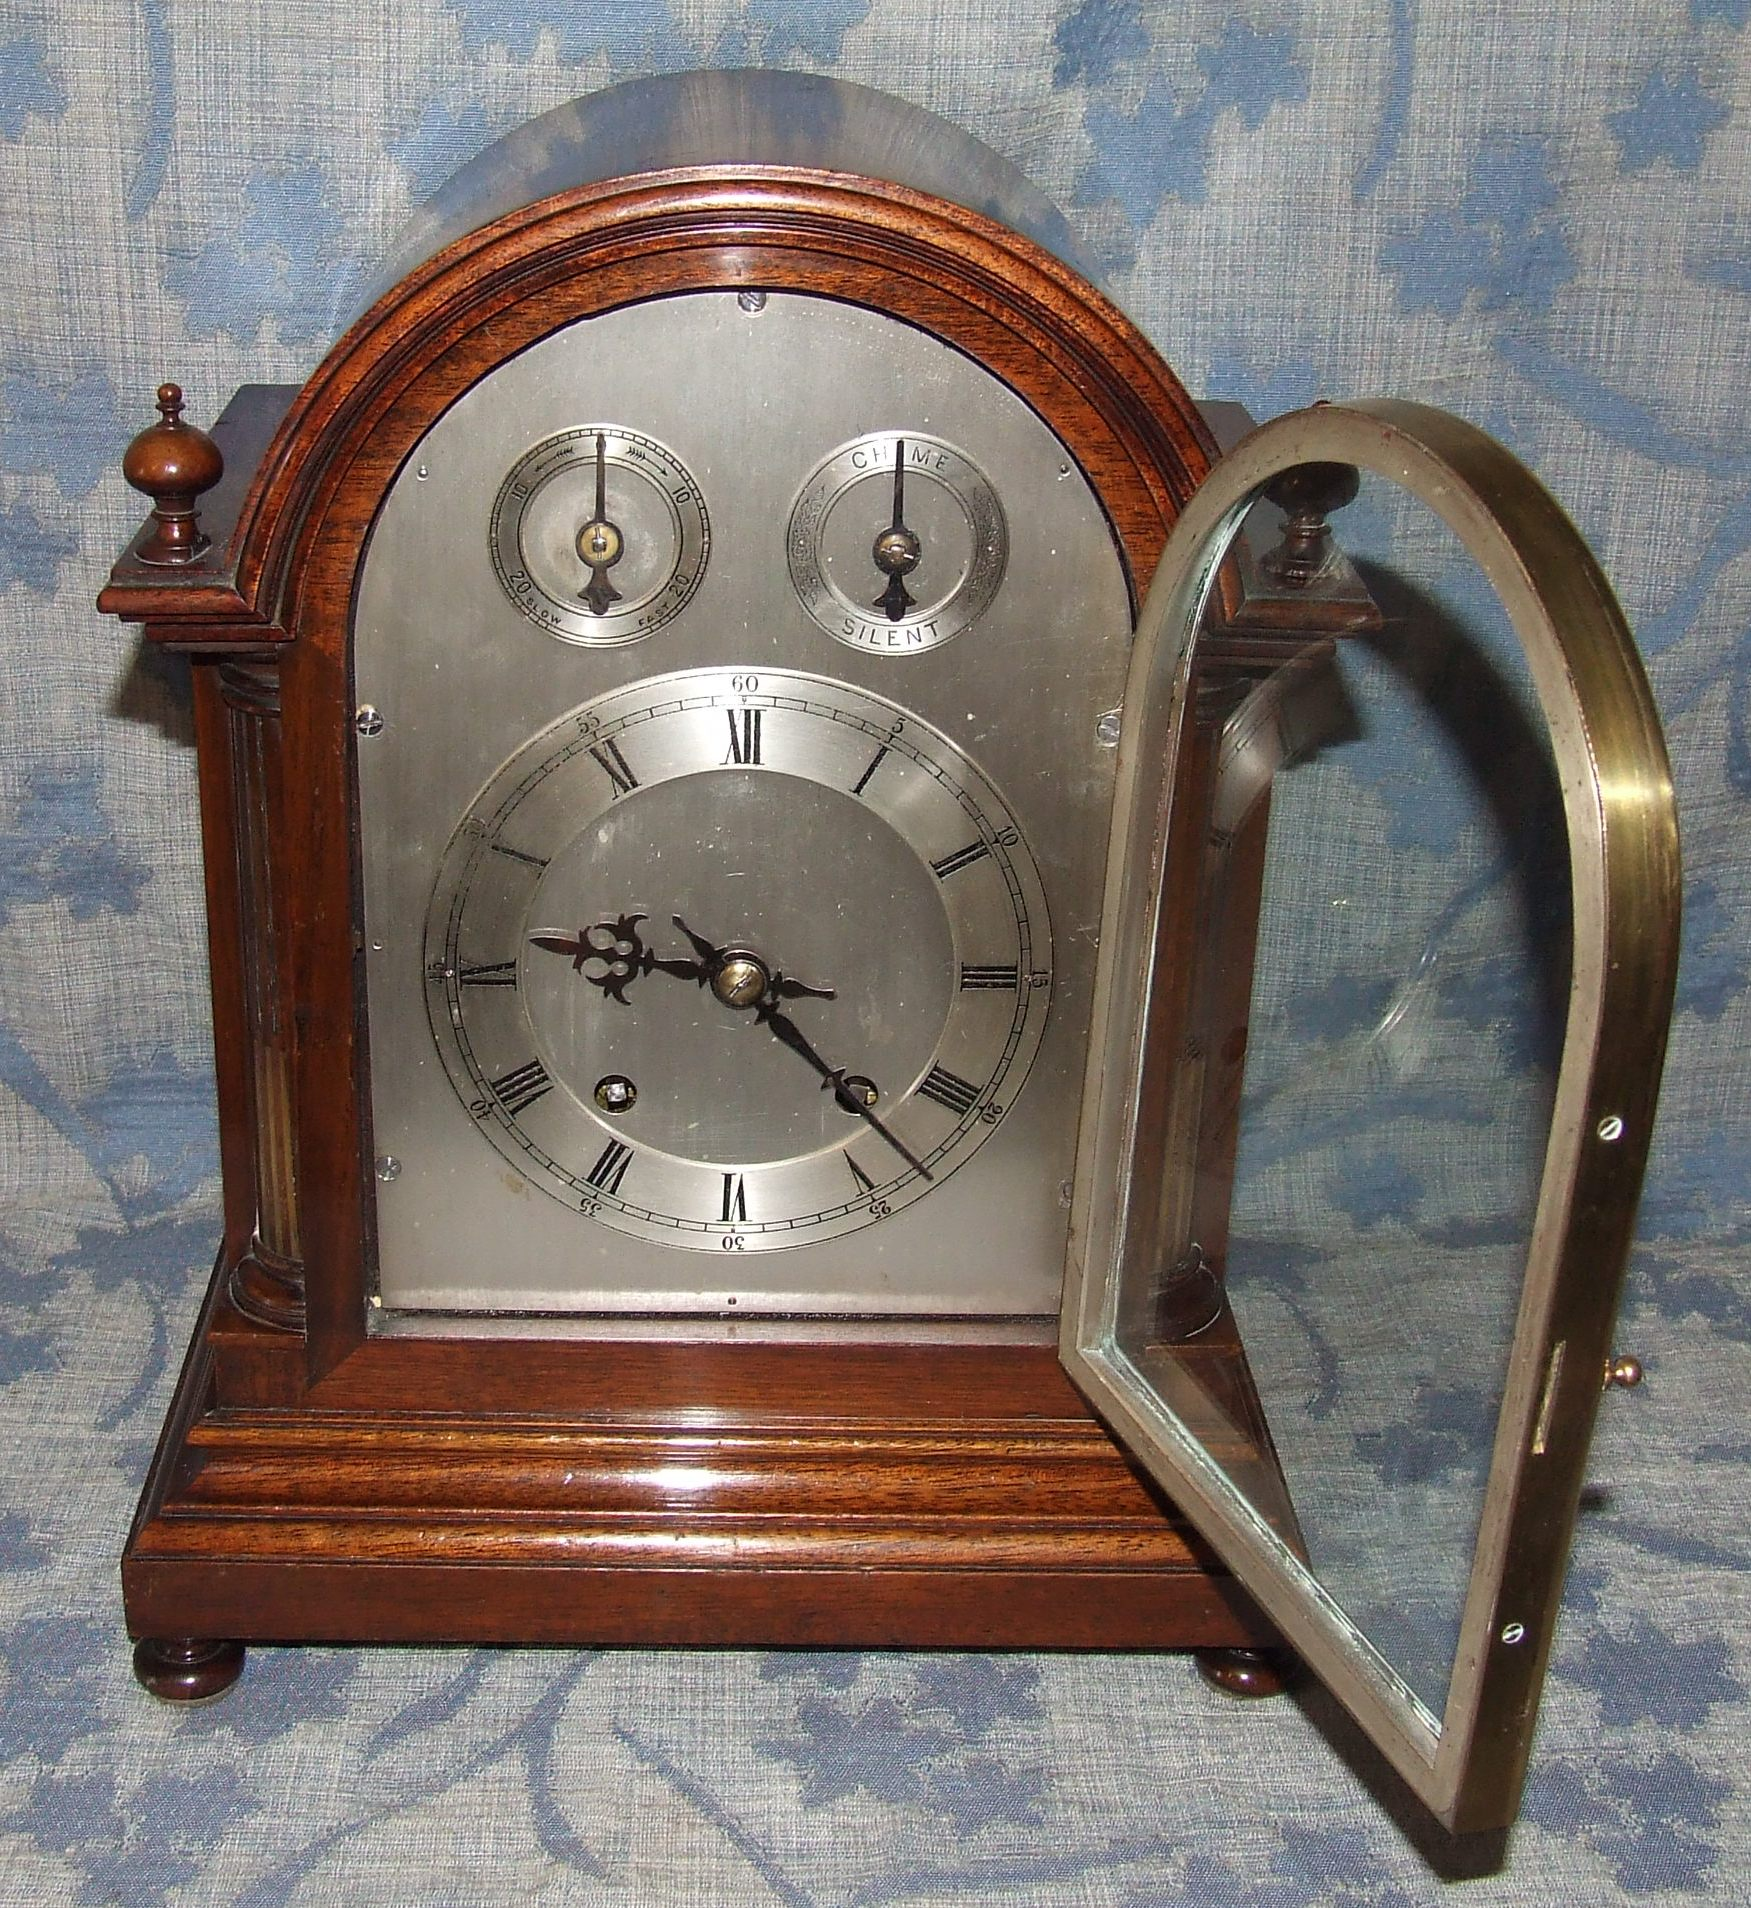 Winterhalder and hofmeier mantel clocks